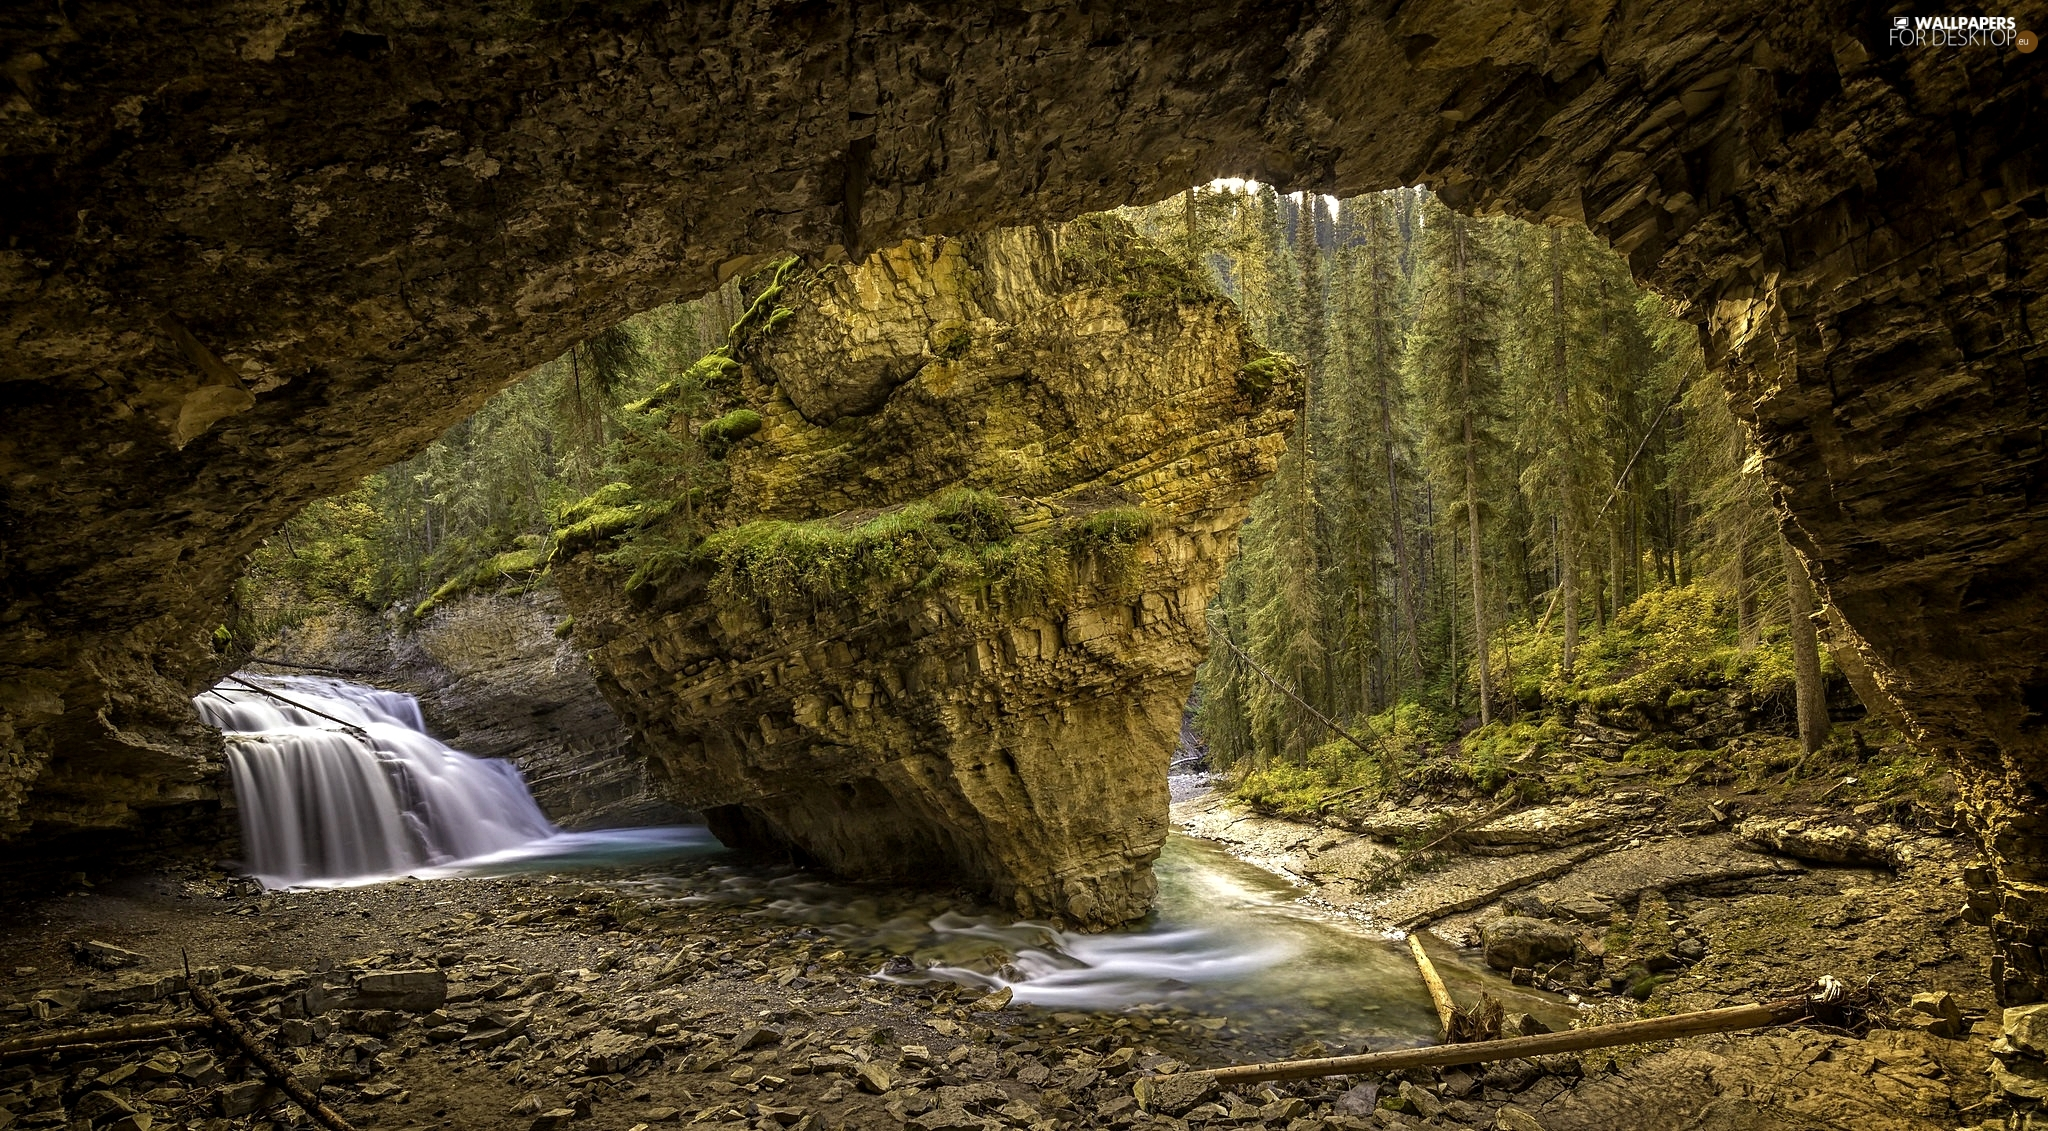 Johnston Canyon, cave, viewes, Rocks, trees, Banff National Park, Canada, waterfall